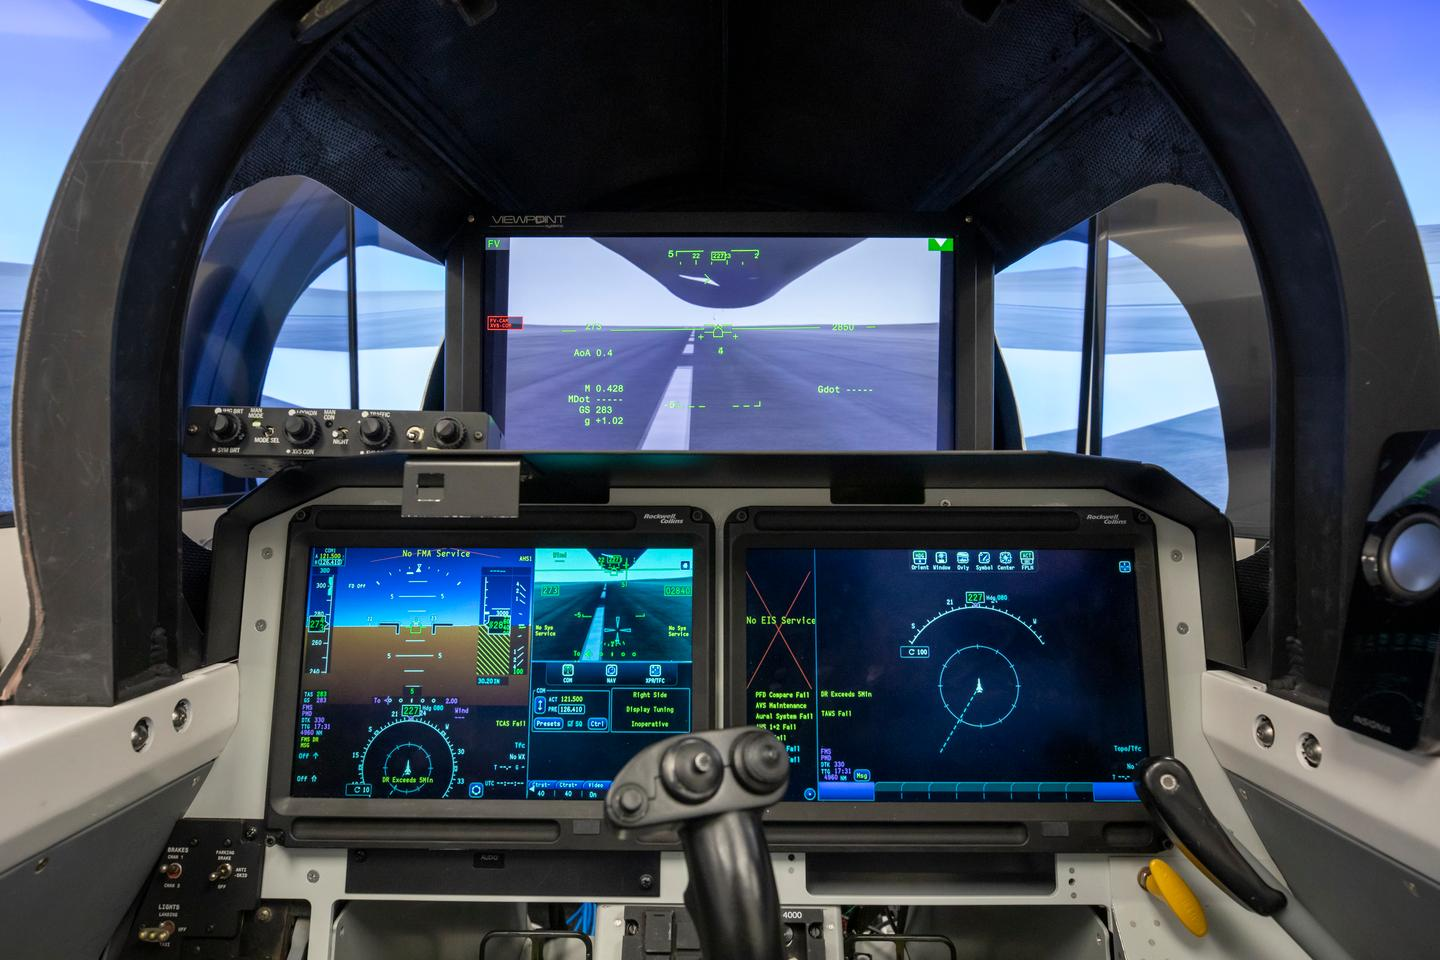 Rendering of the X-59 cockpit with the XVS